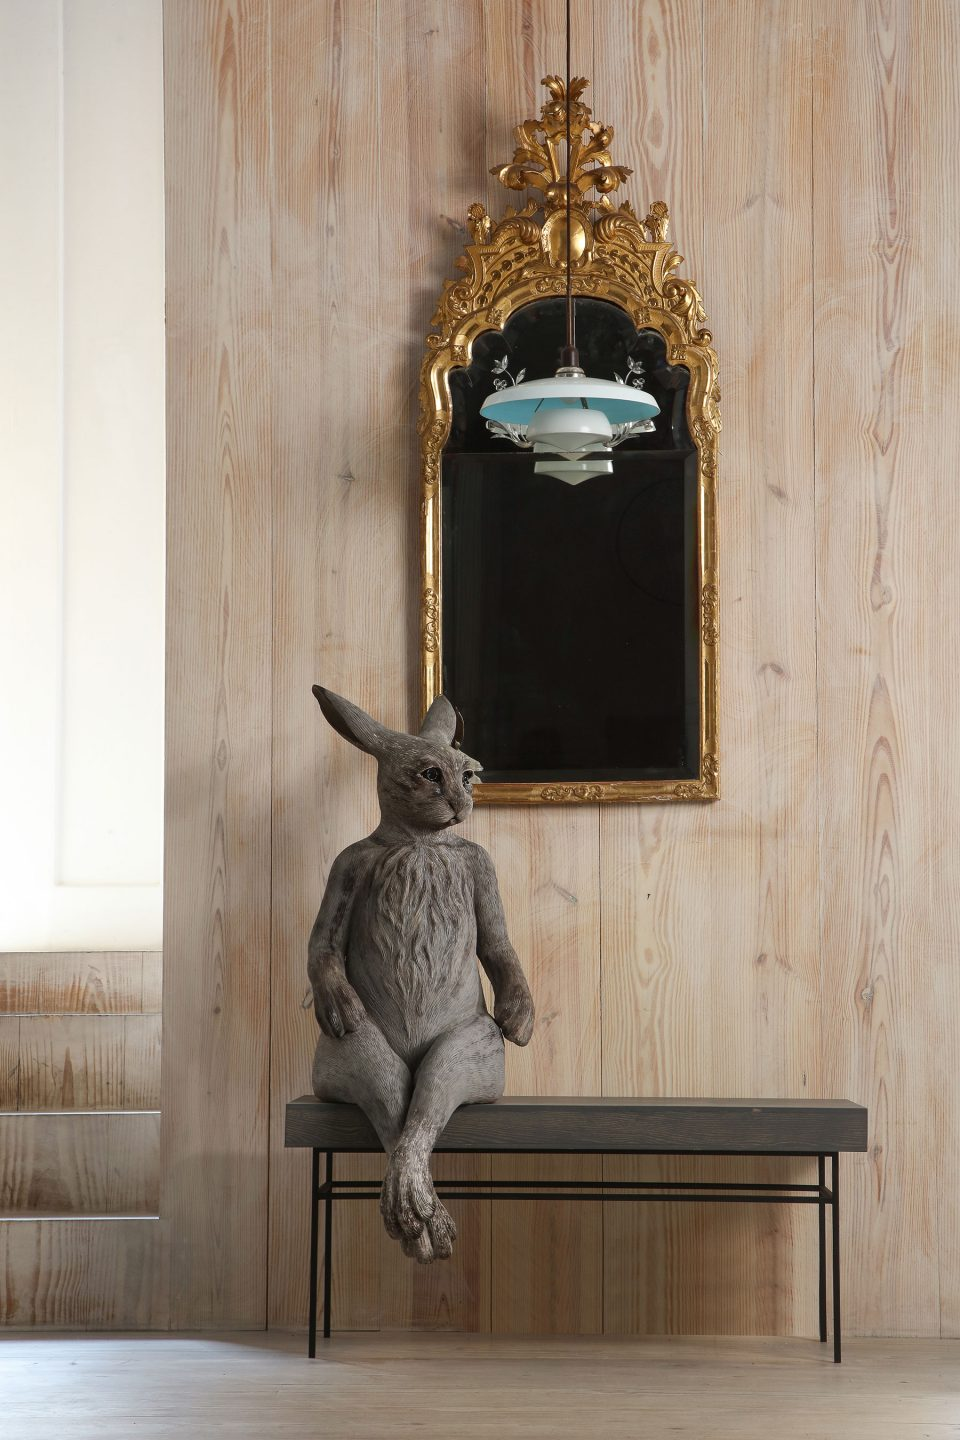 These Human-Size Ceramic Hares Evoke Serious Emotions